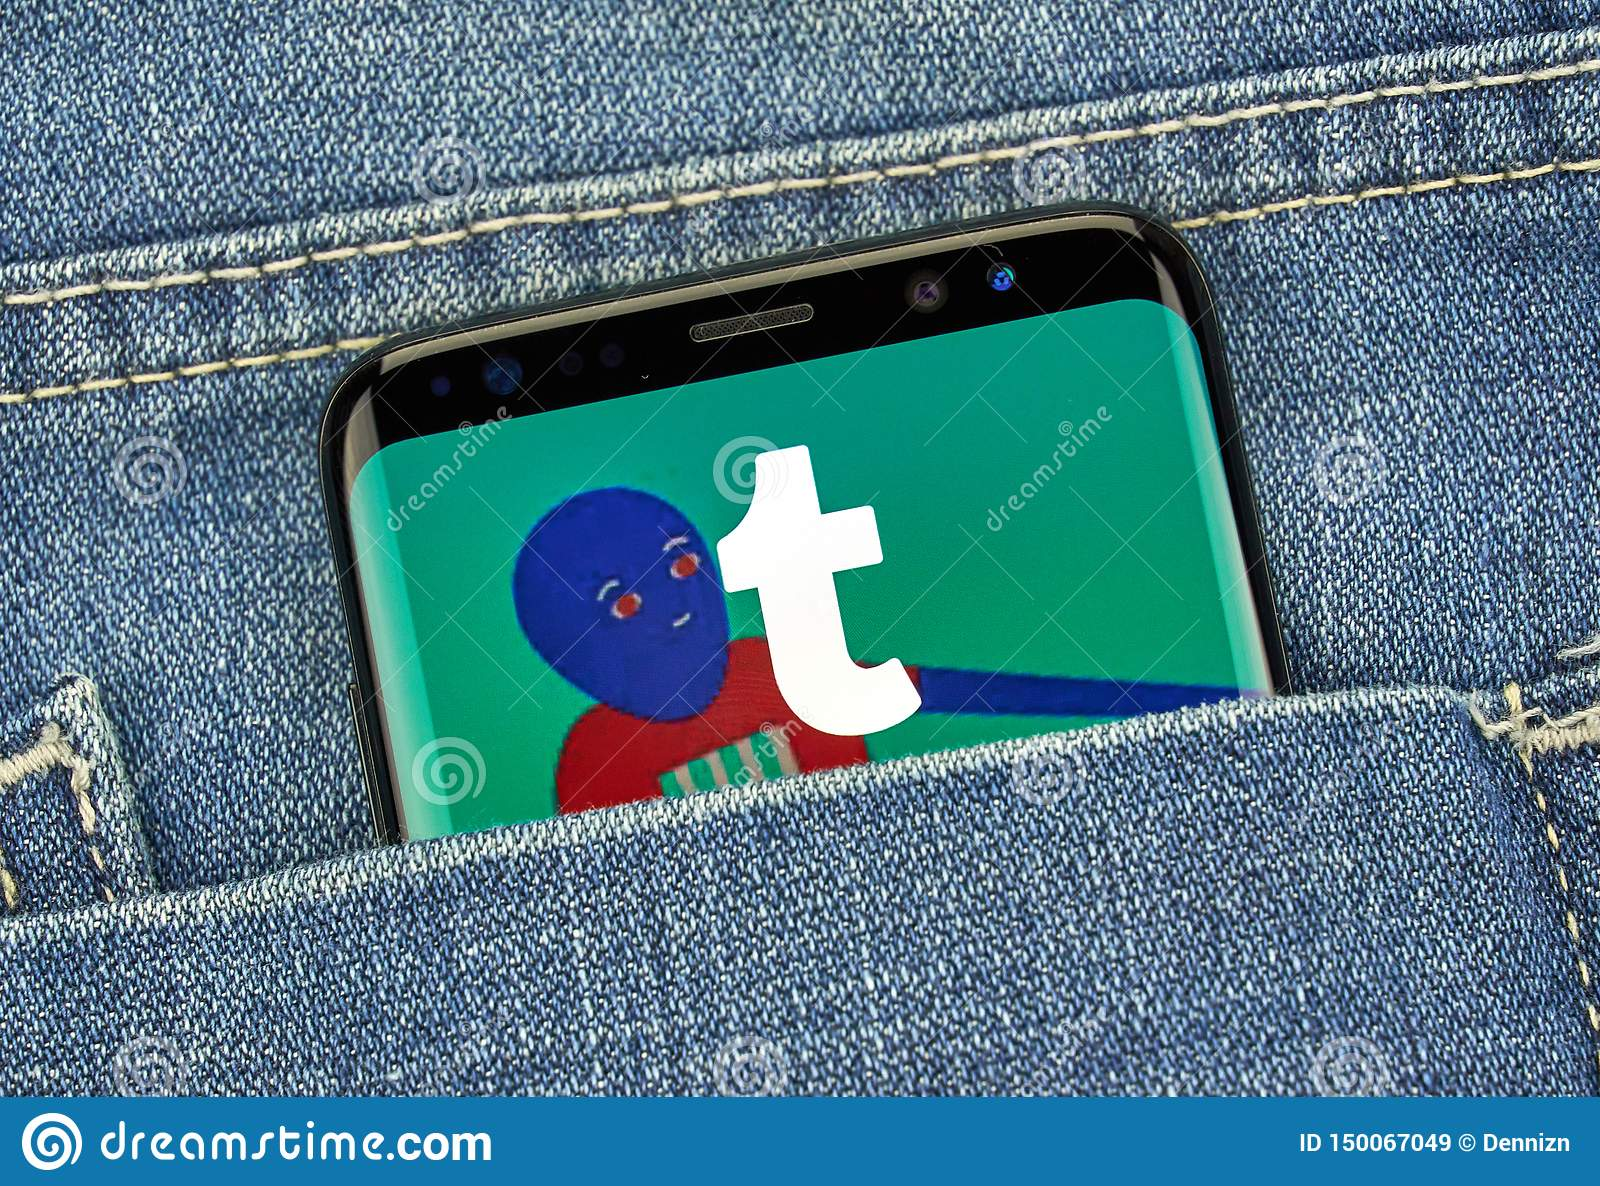 Tumblr Mobile App On Samsung S8 Editorial Stock Image